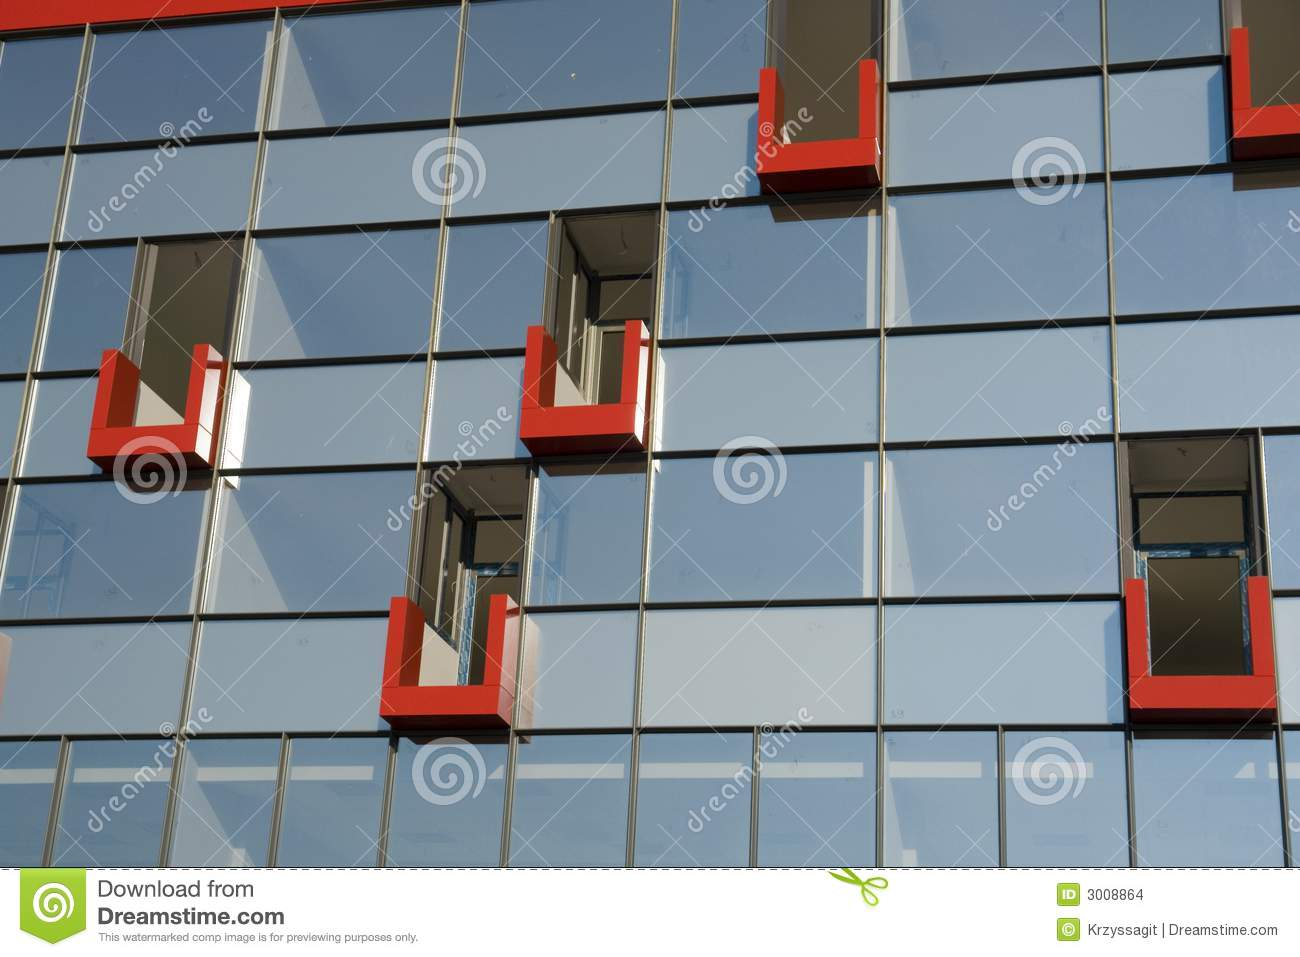 Immeuble de bureaux contemporain photo stock image du for Facade immeuble contemporain